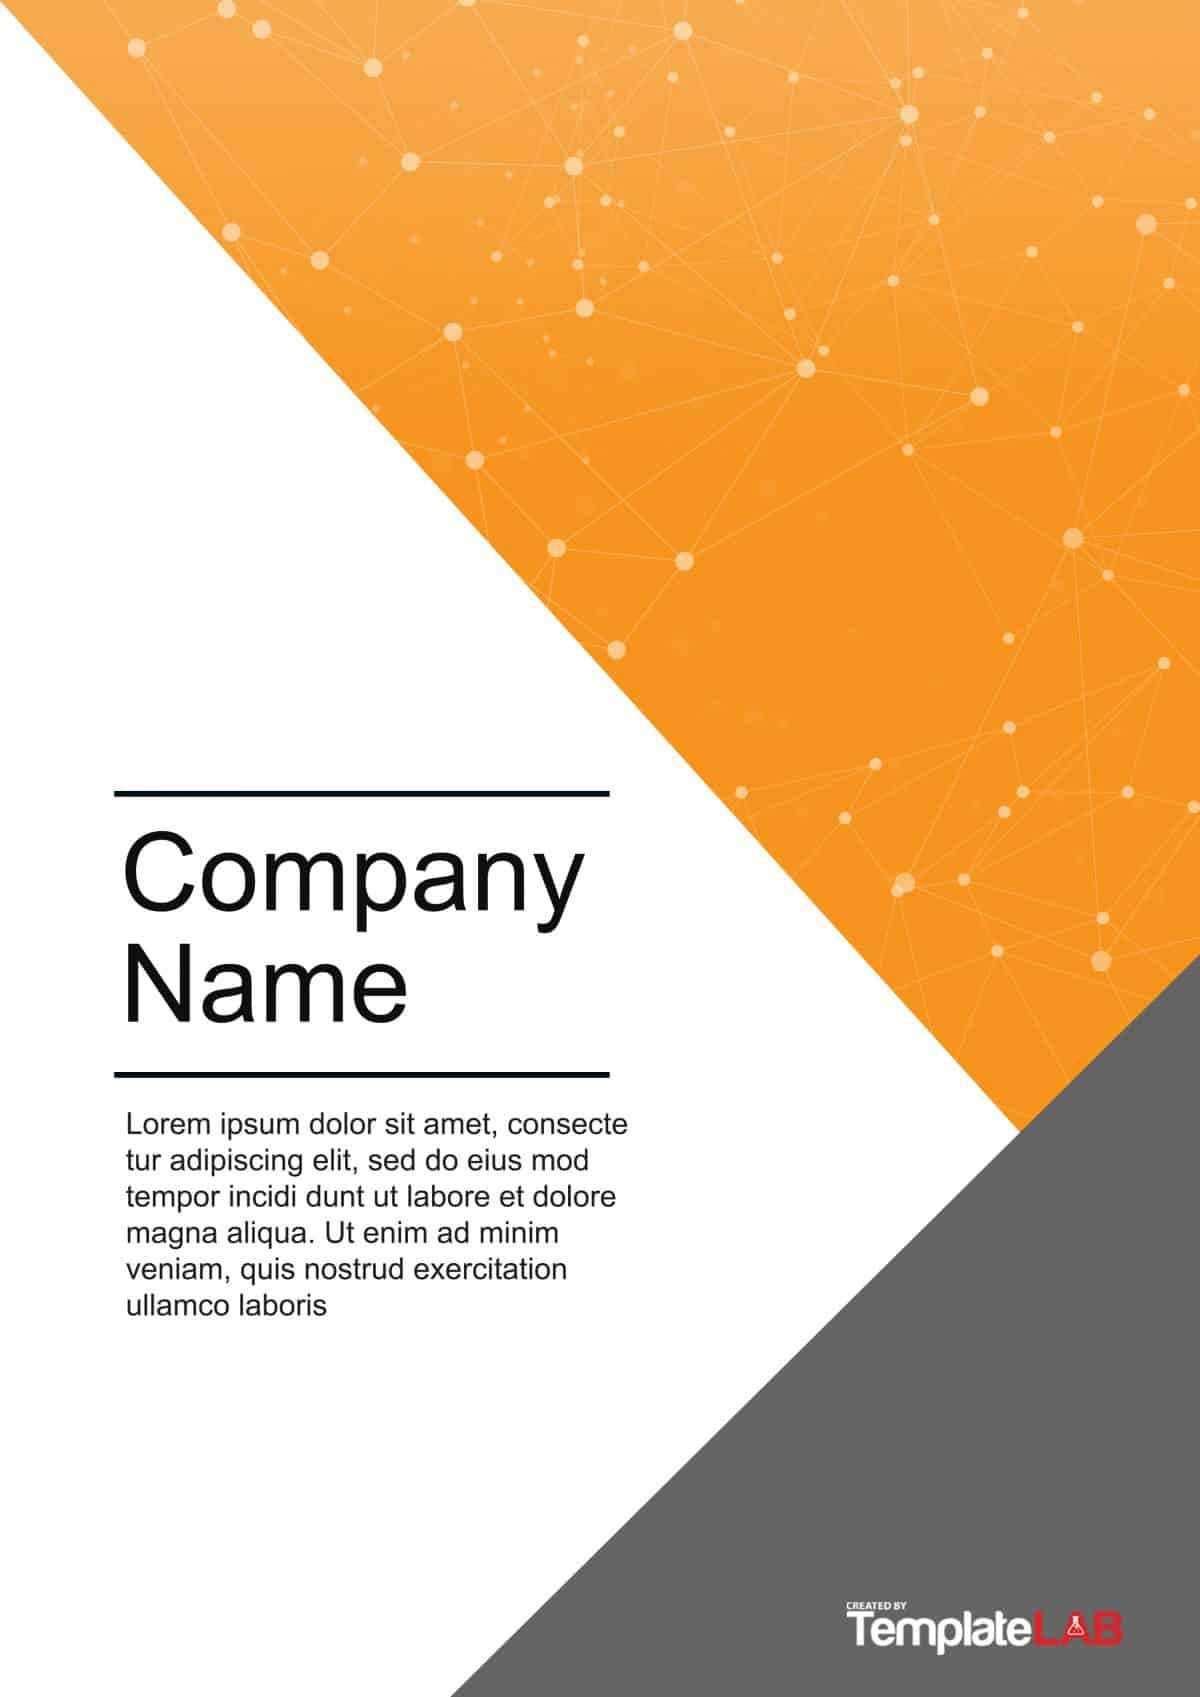 39 Amazing Cover Page Templates (Word + Psd) ᐅ Templatelab With Word Title Page Templates